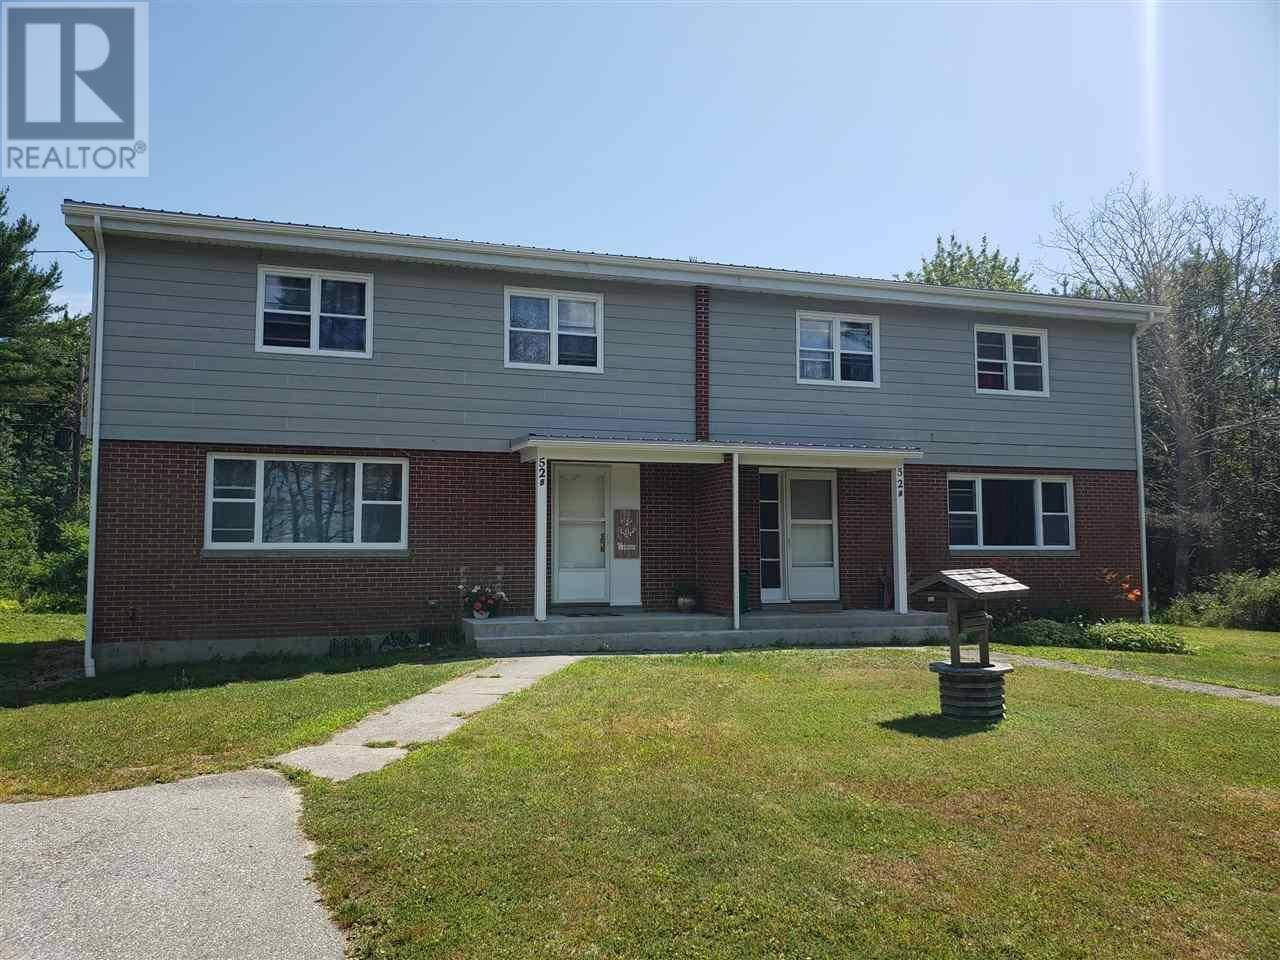 Townhouse for sale at 52 Mayflower Rd Unit A&B Sandy Point Nova Scotia - MLS: 201917498